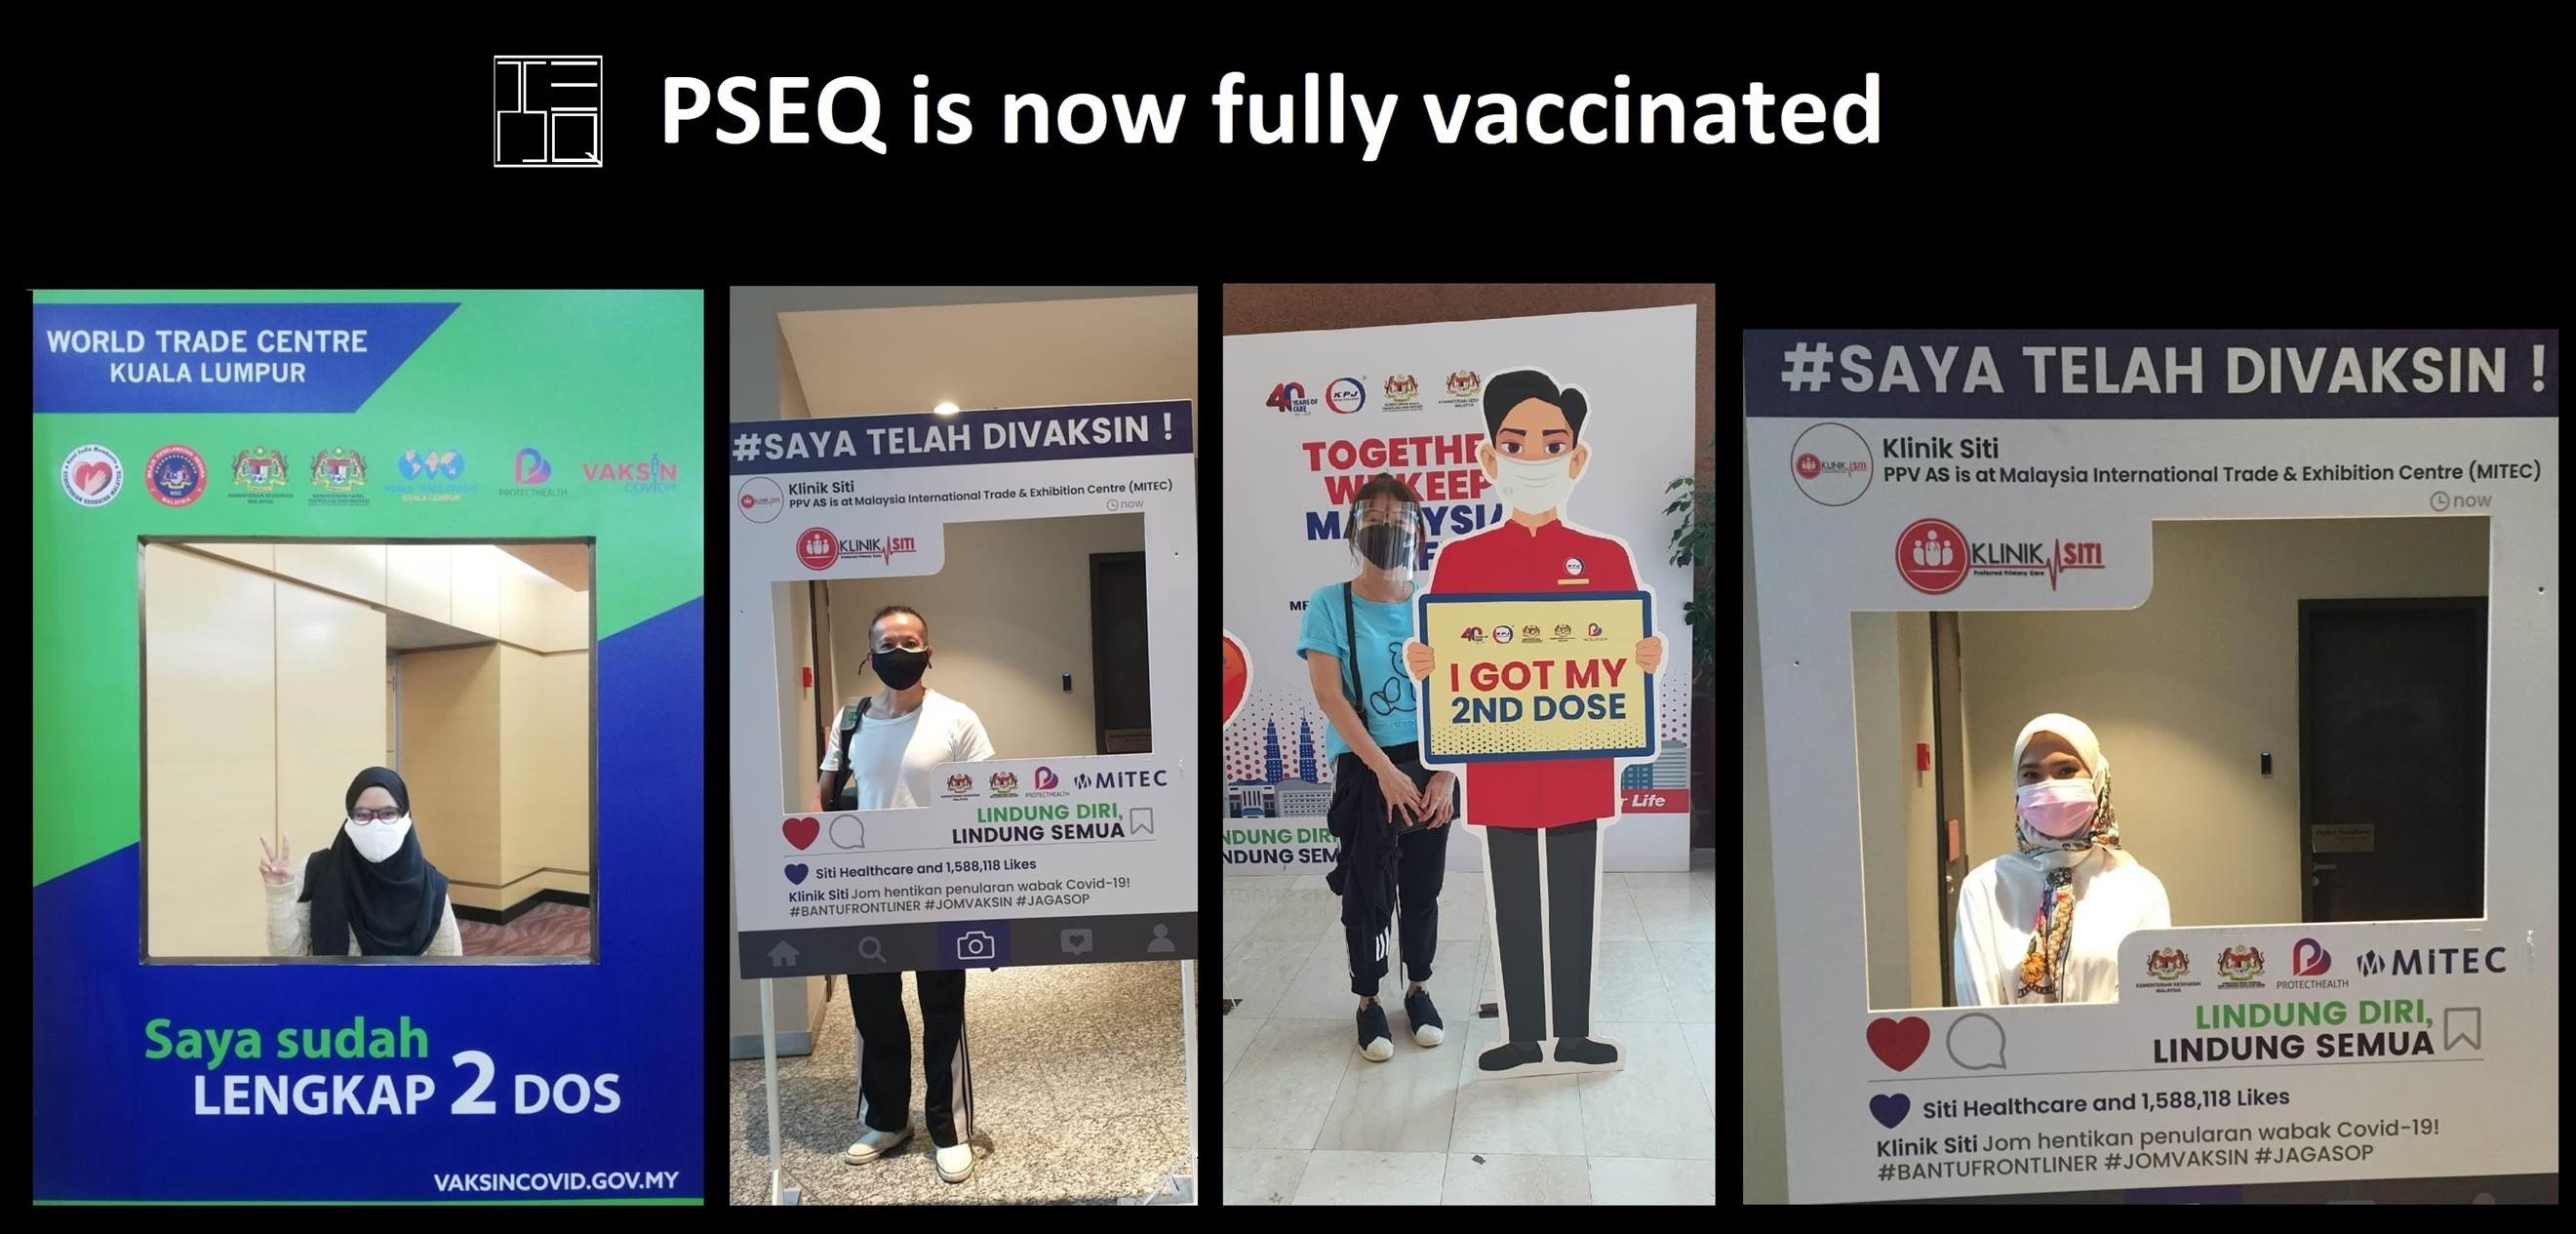 We are now fully vaccinated and ready to face the challenges of the new norm.  Meanwhile. please continue to stay safe and stay vigil against Covid